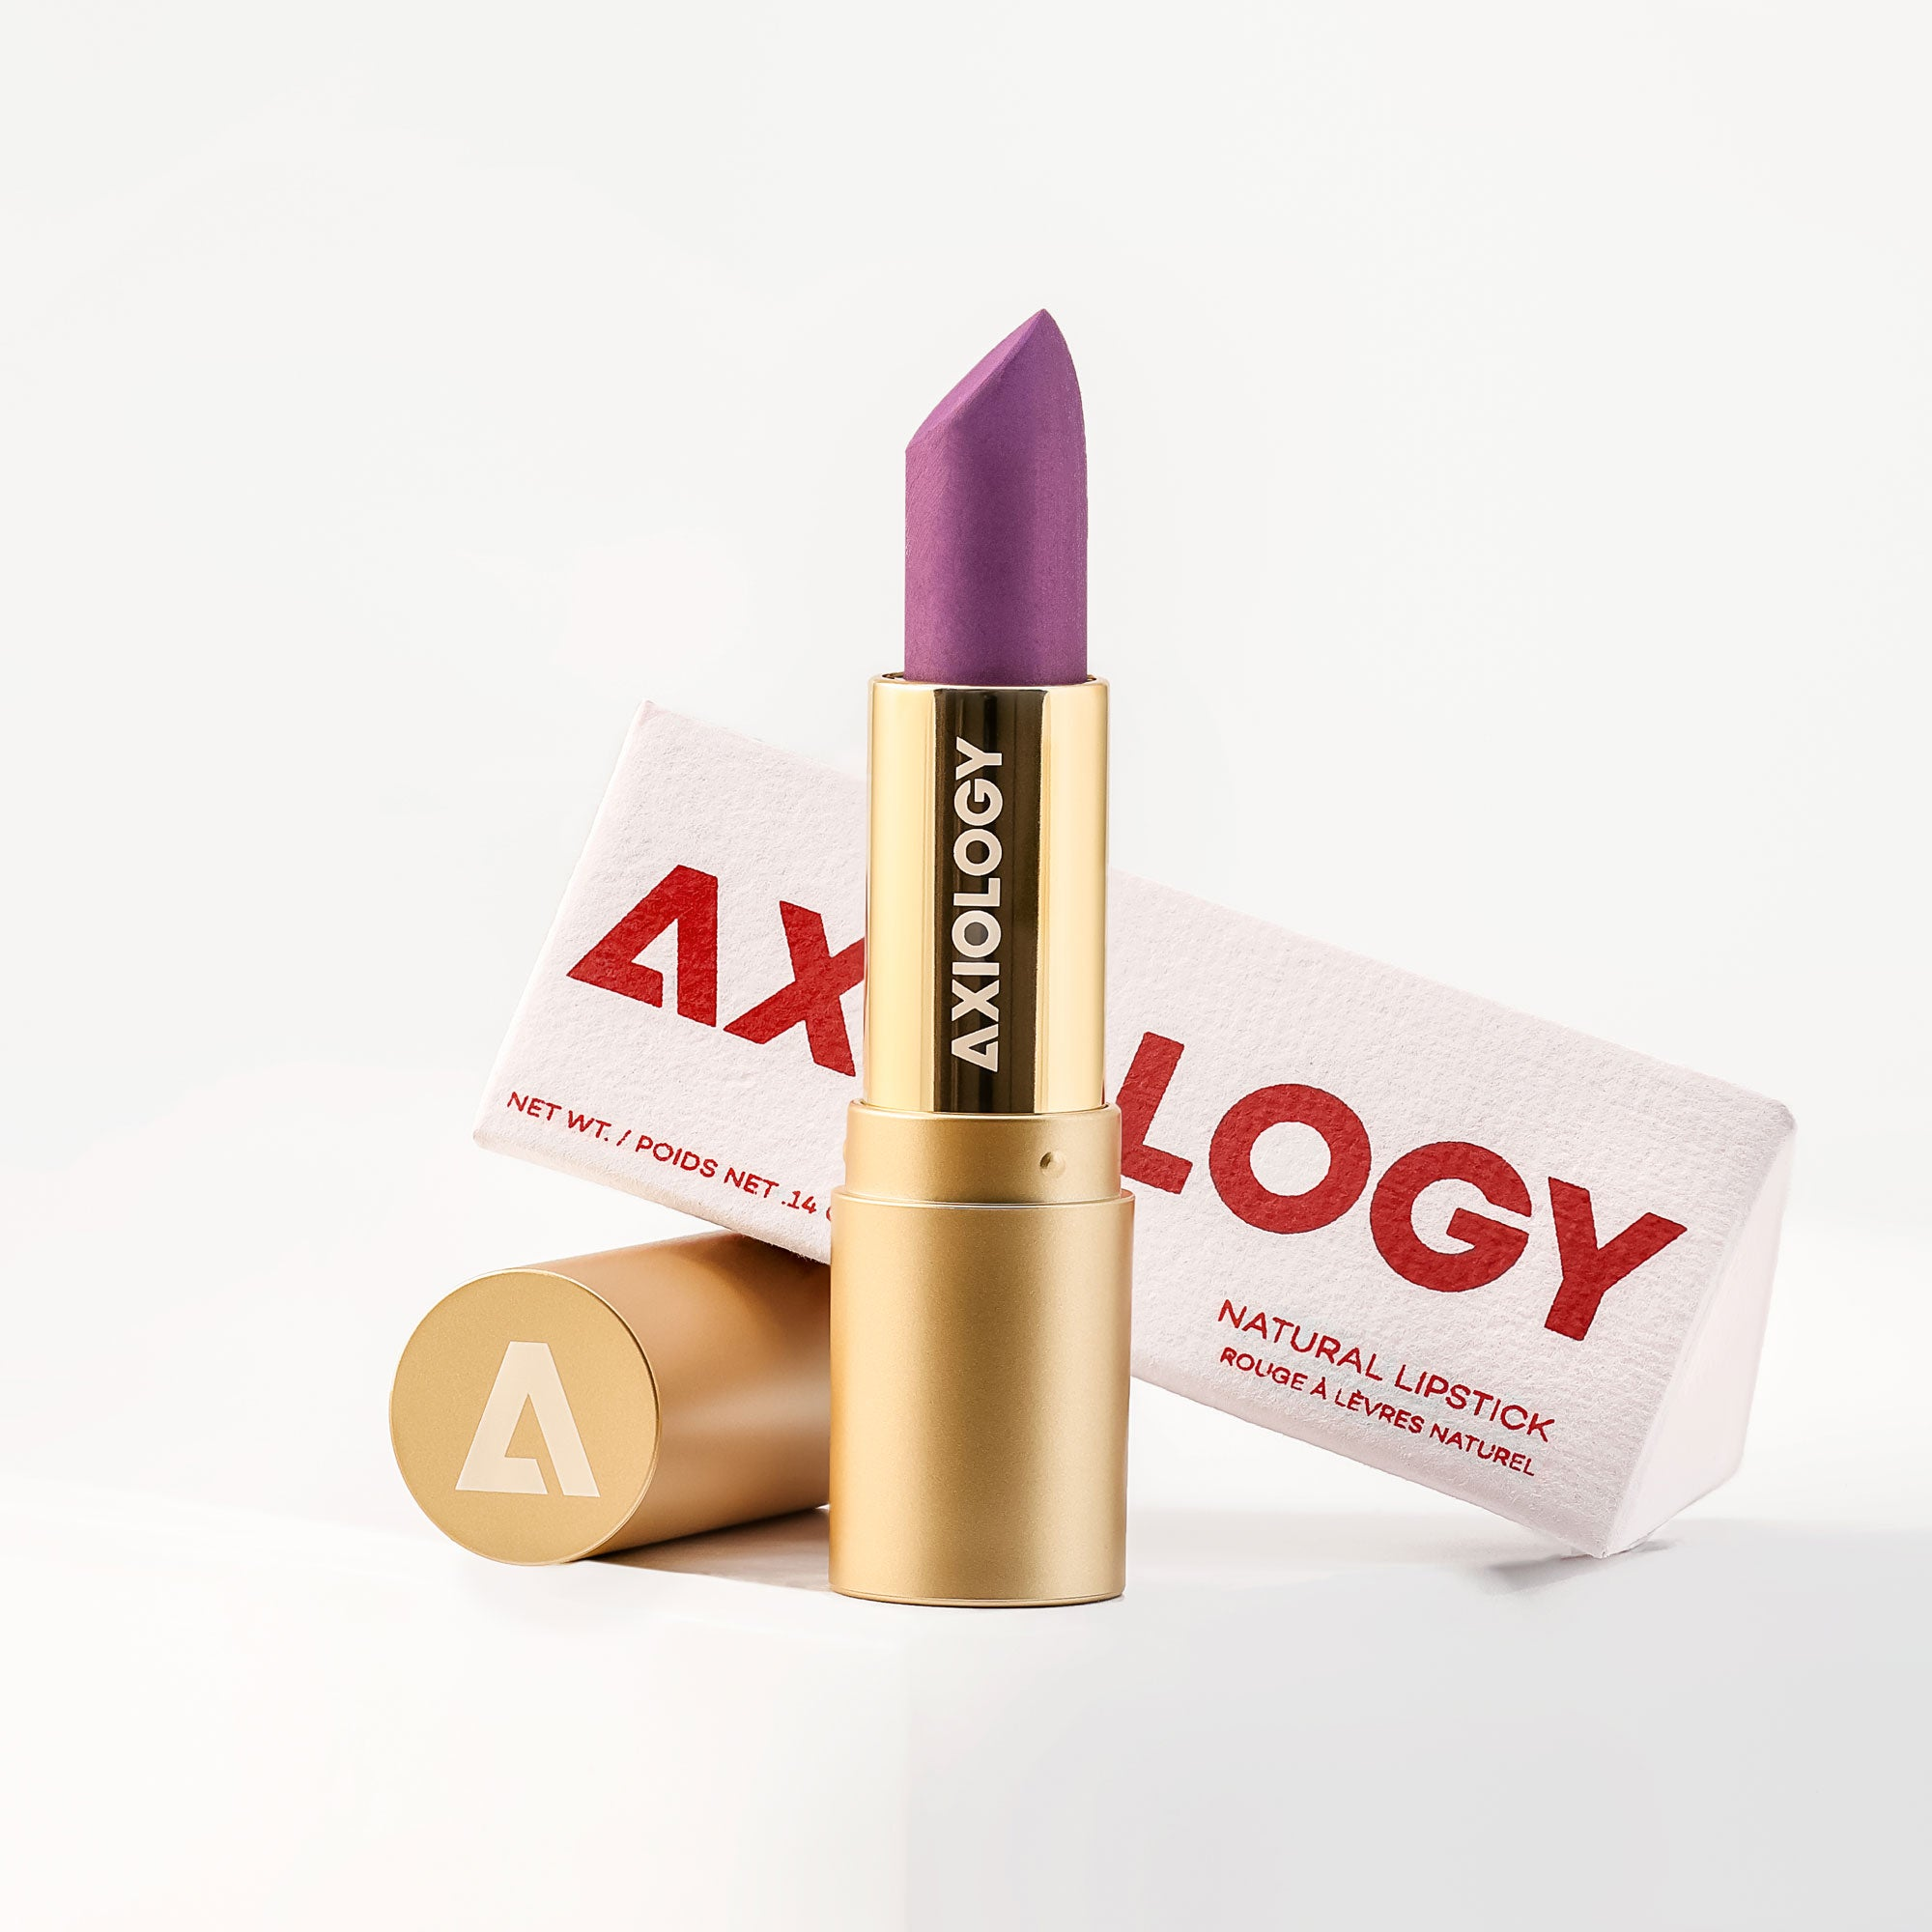 Axiology Beauty REFLECTION 2020